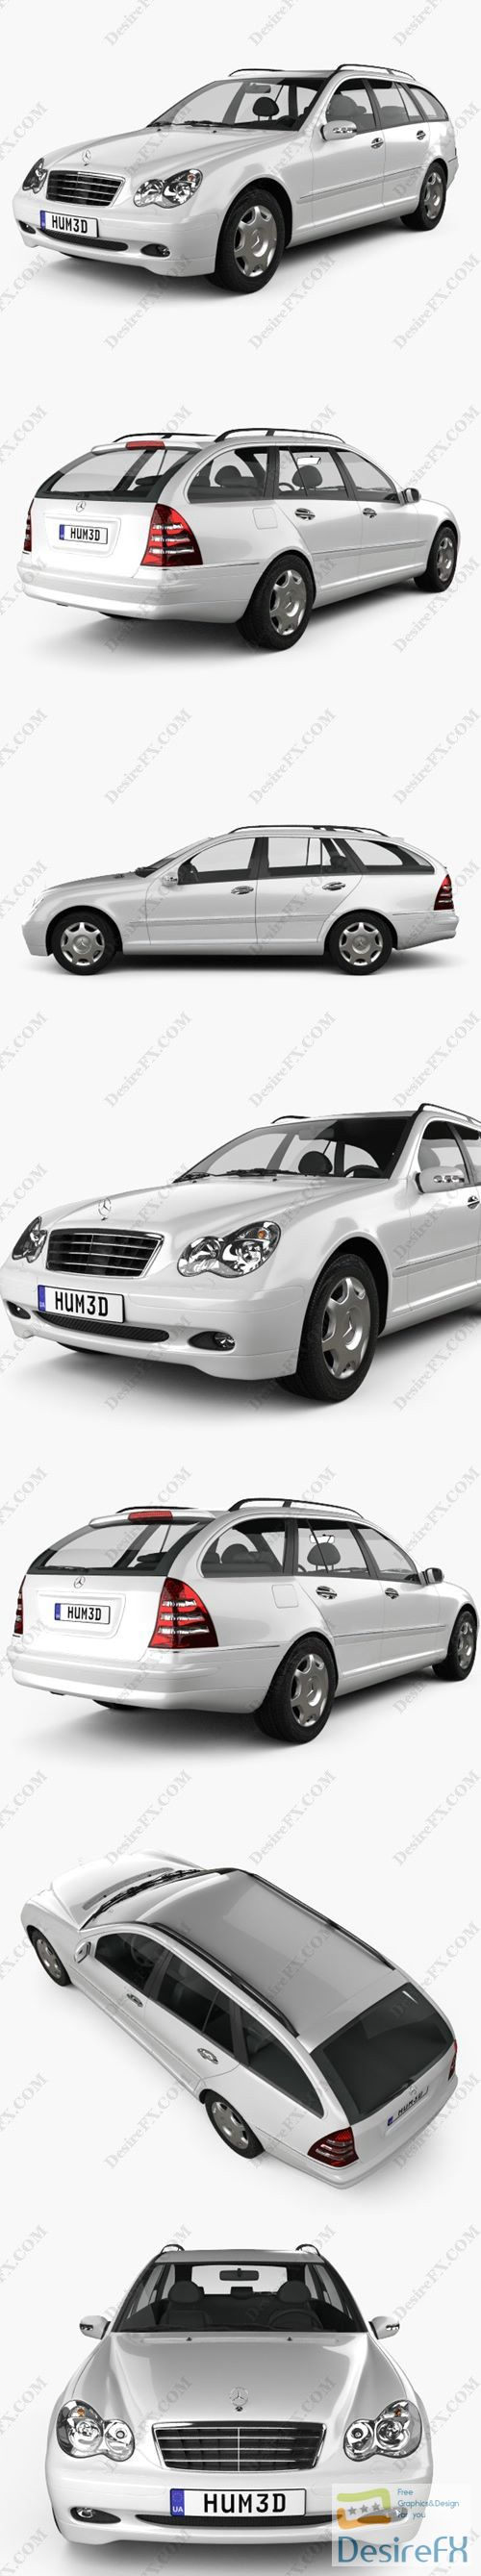 Mercedes-Benz C-Class estate 2005 3D Model